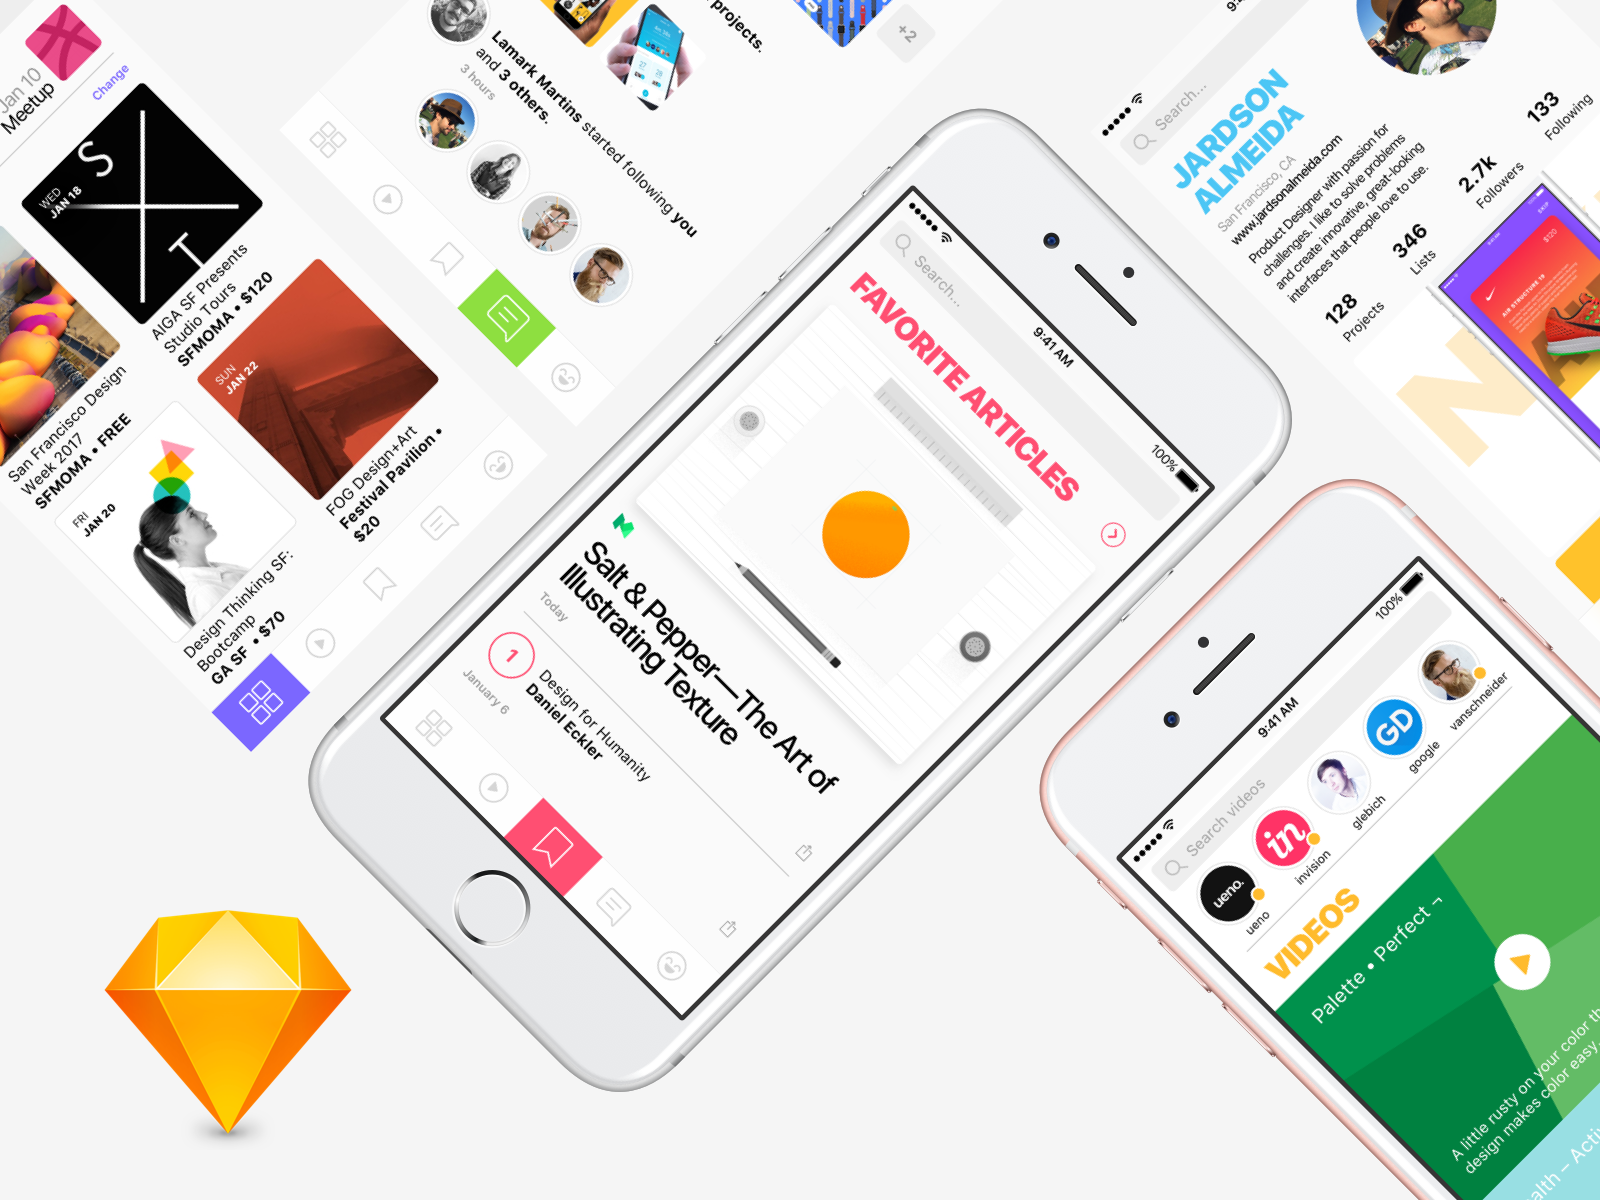 Social Network App Design Concept - 5 Free Screens for Sketch community